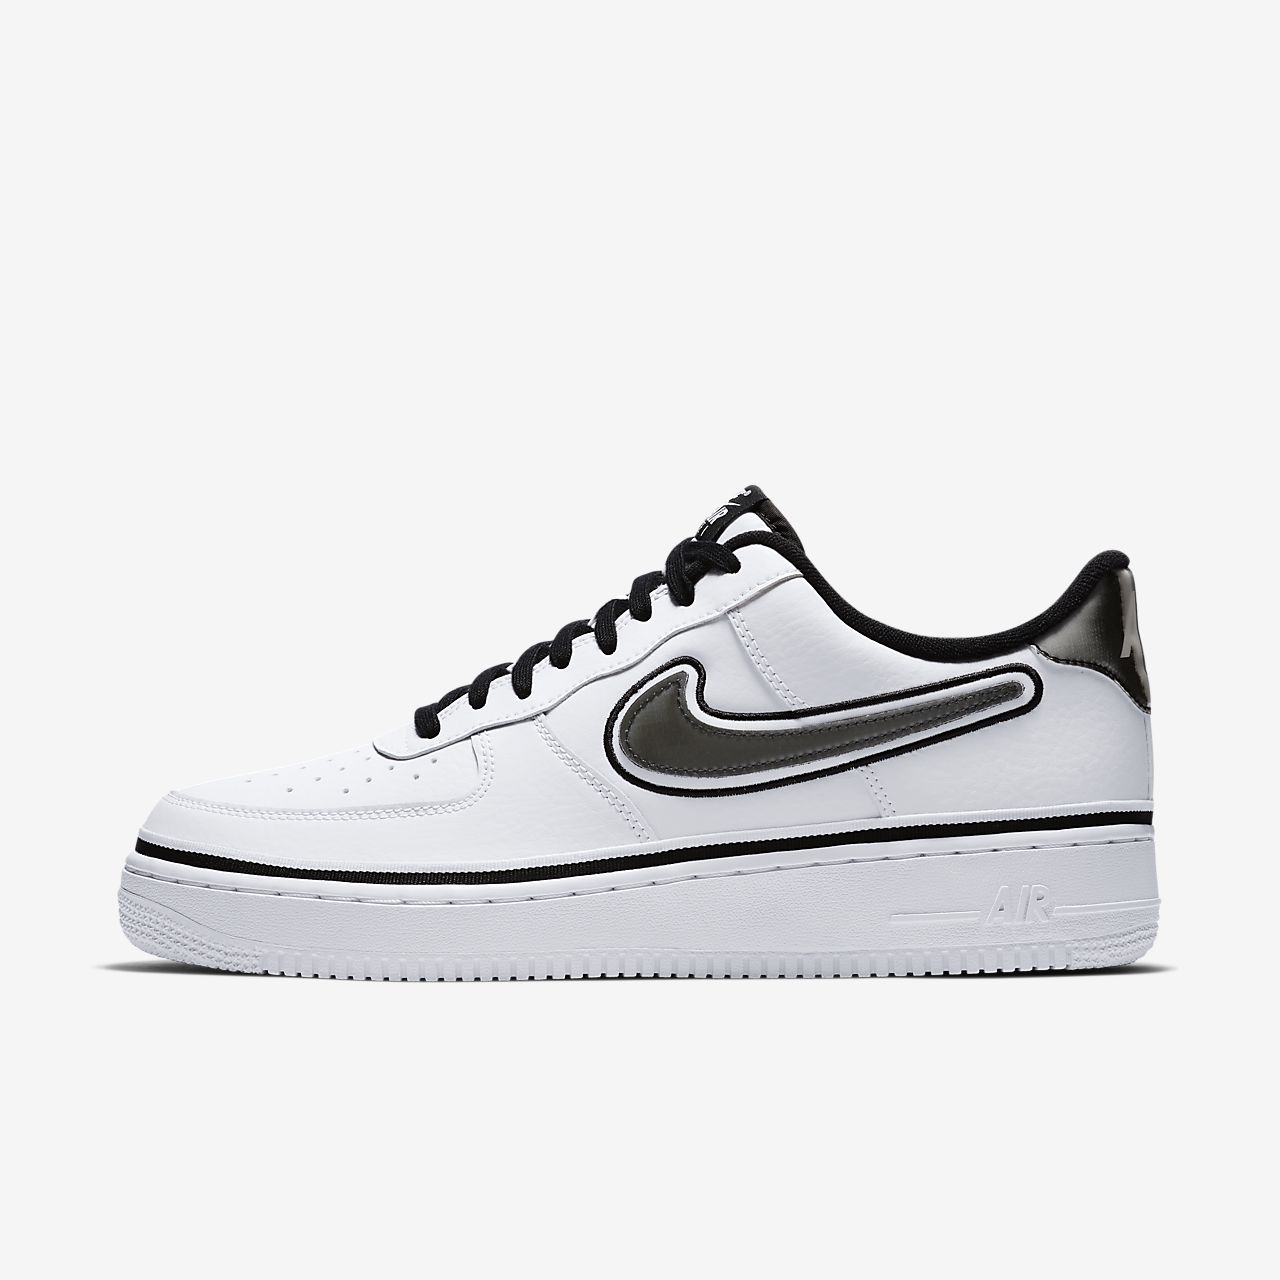 รองเท้า Nike Air Force 1 '07 LV8 Sport NBA